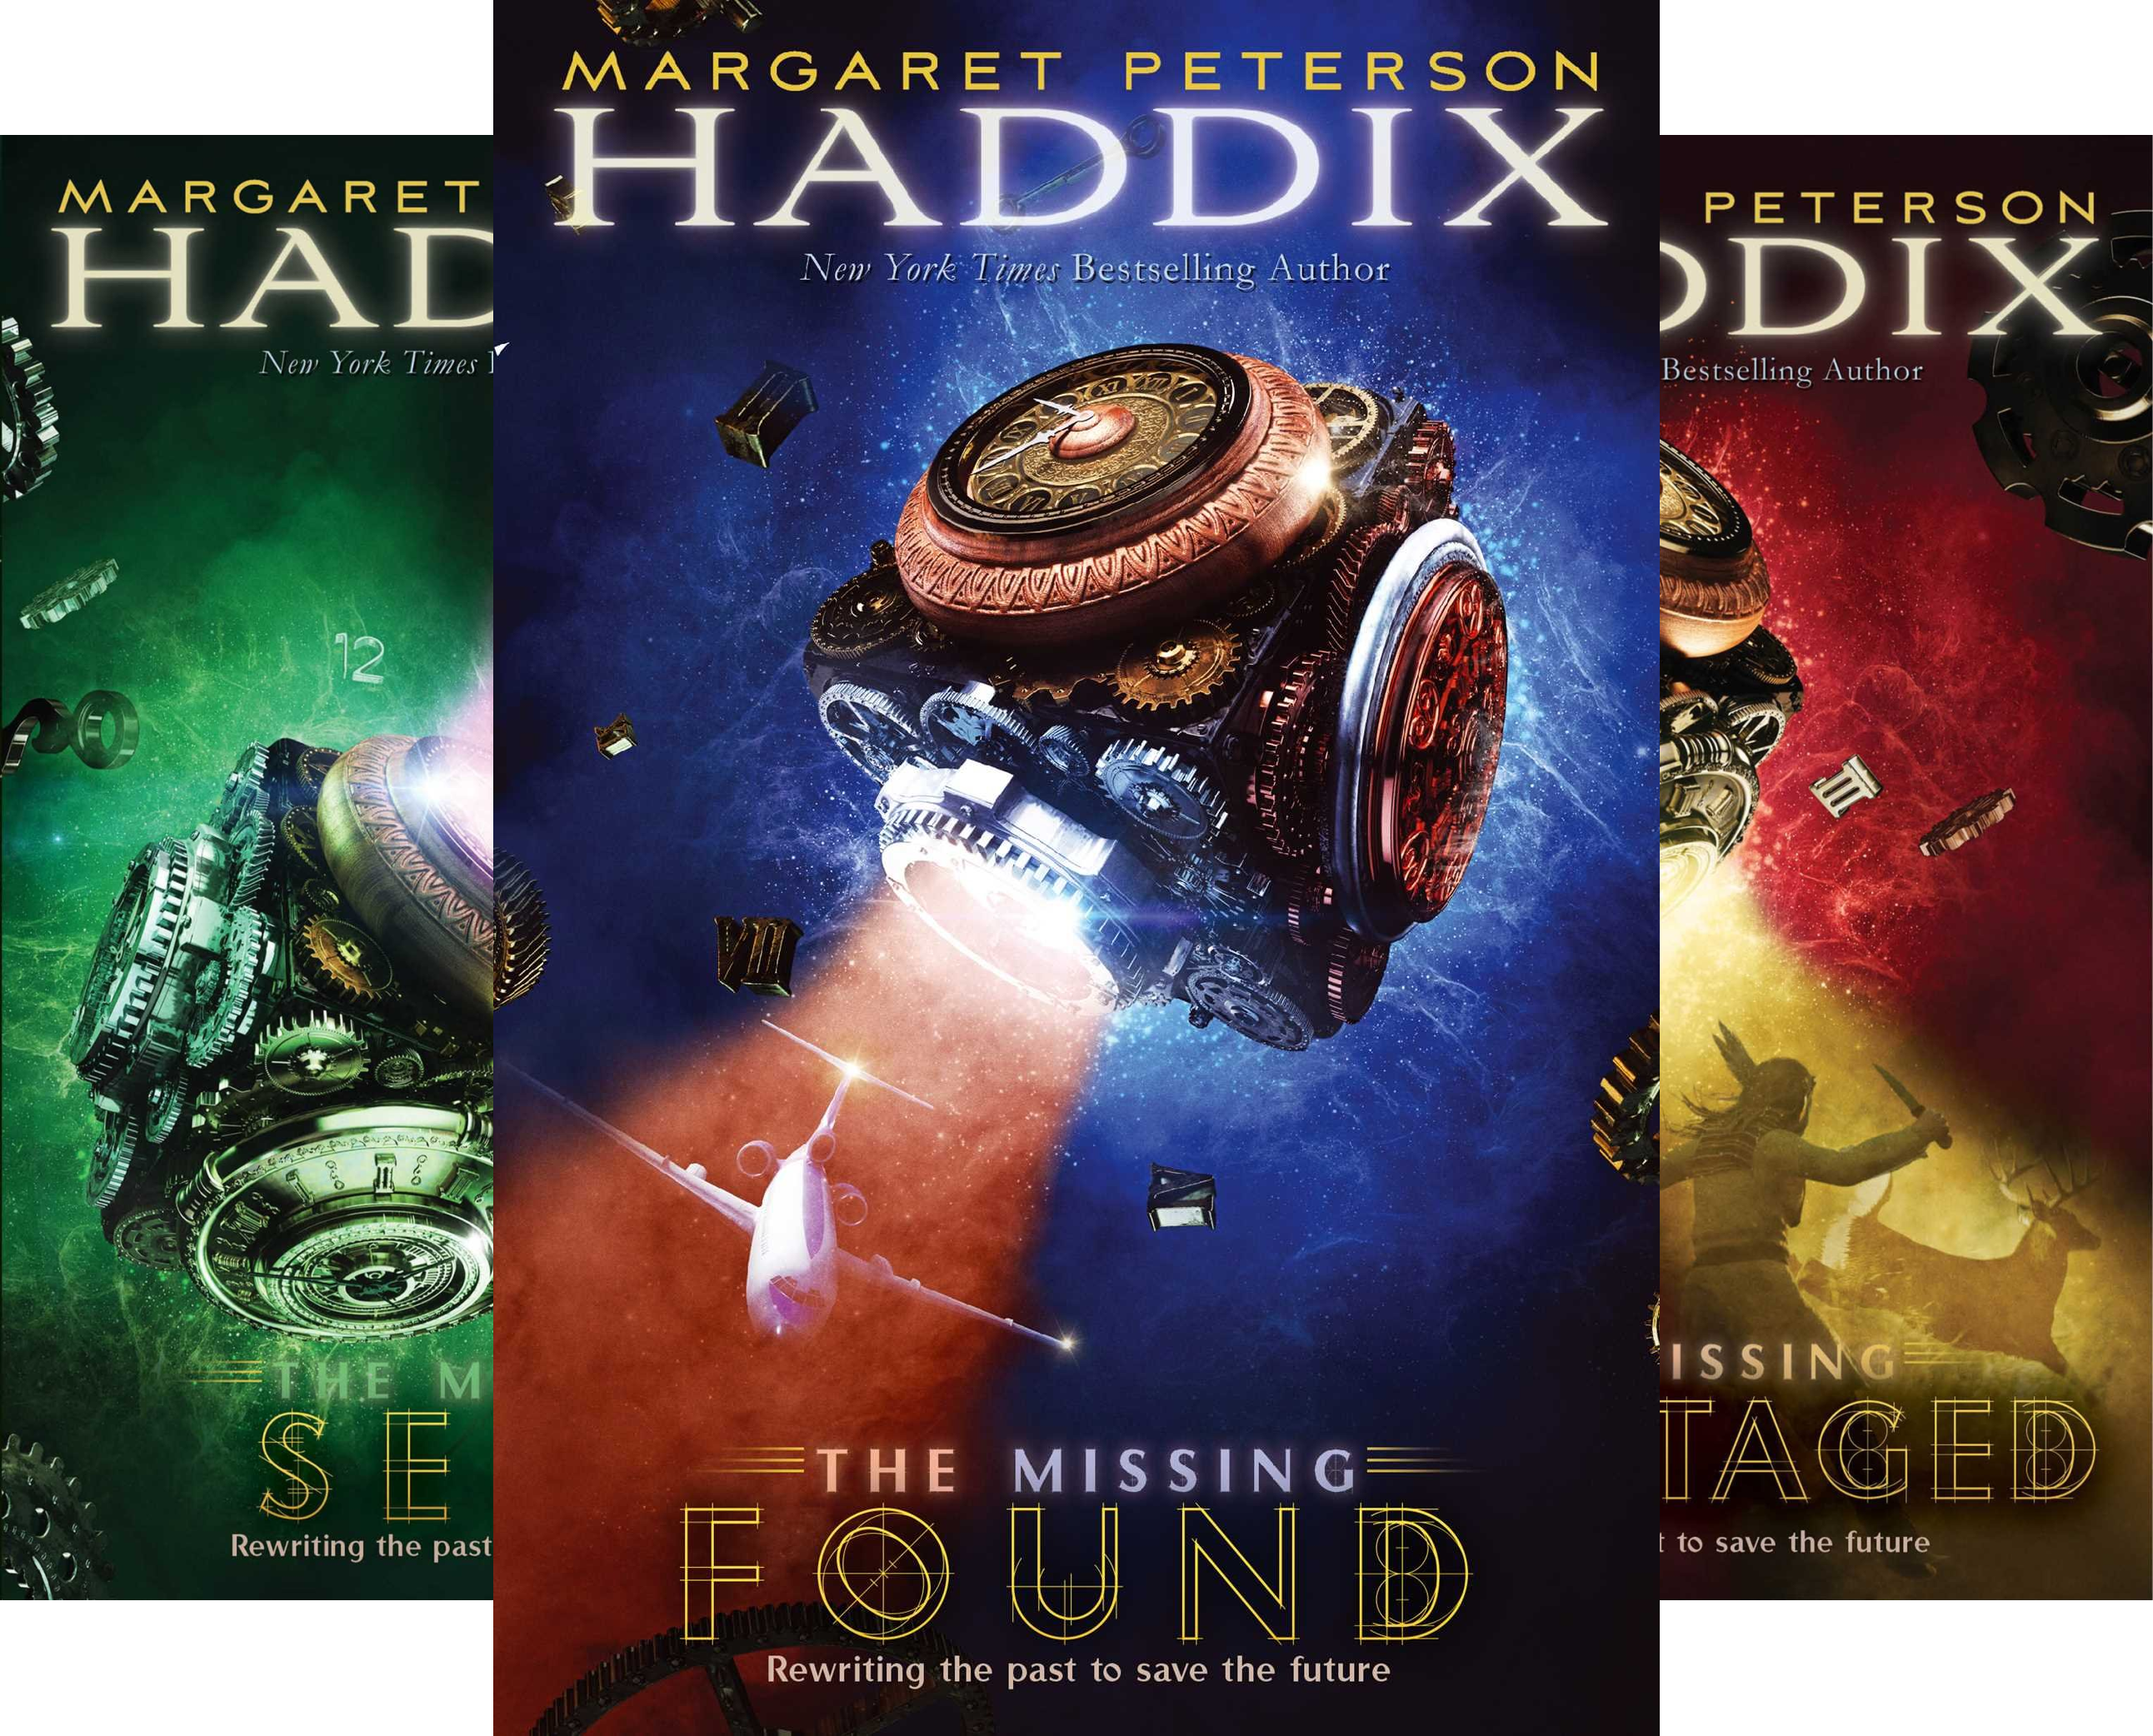 Margaret Peterson Haddix - The Missing (8 Book Series)